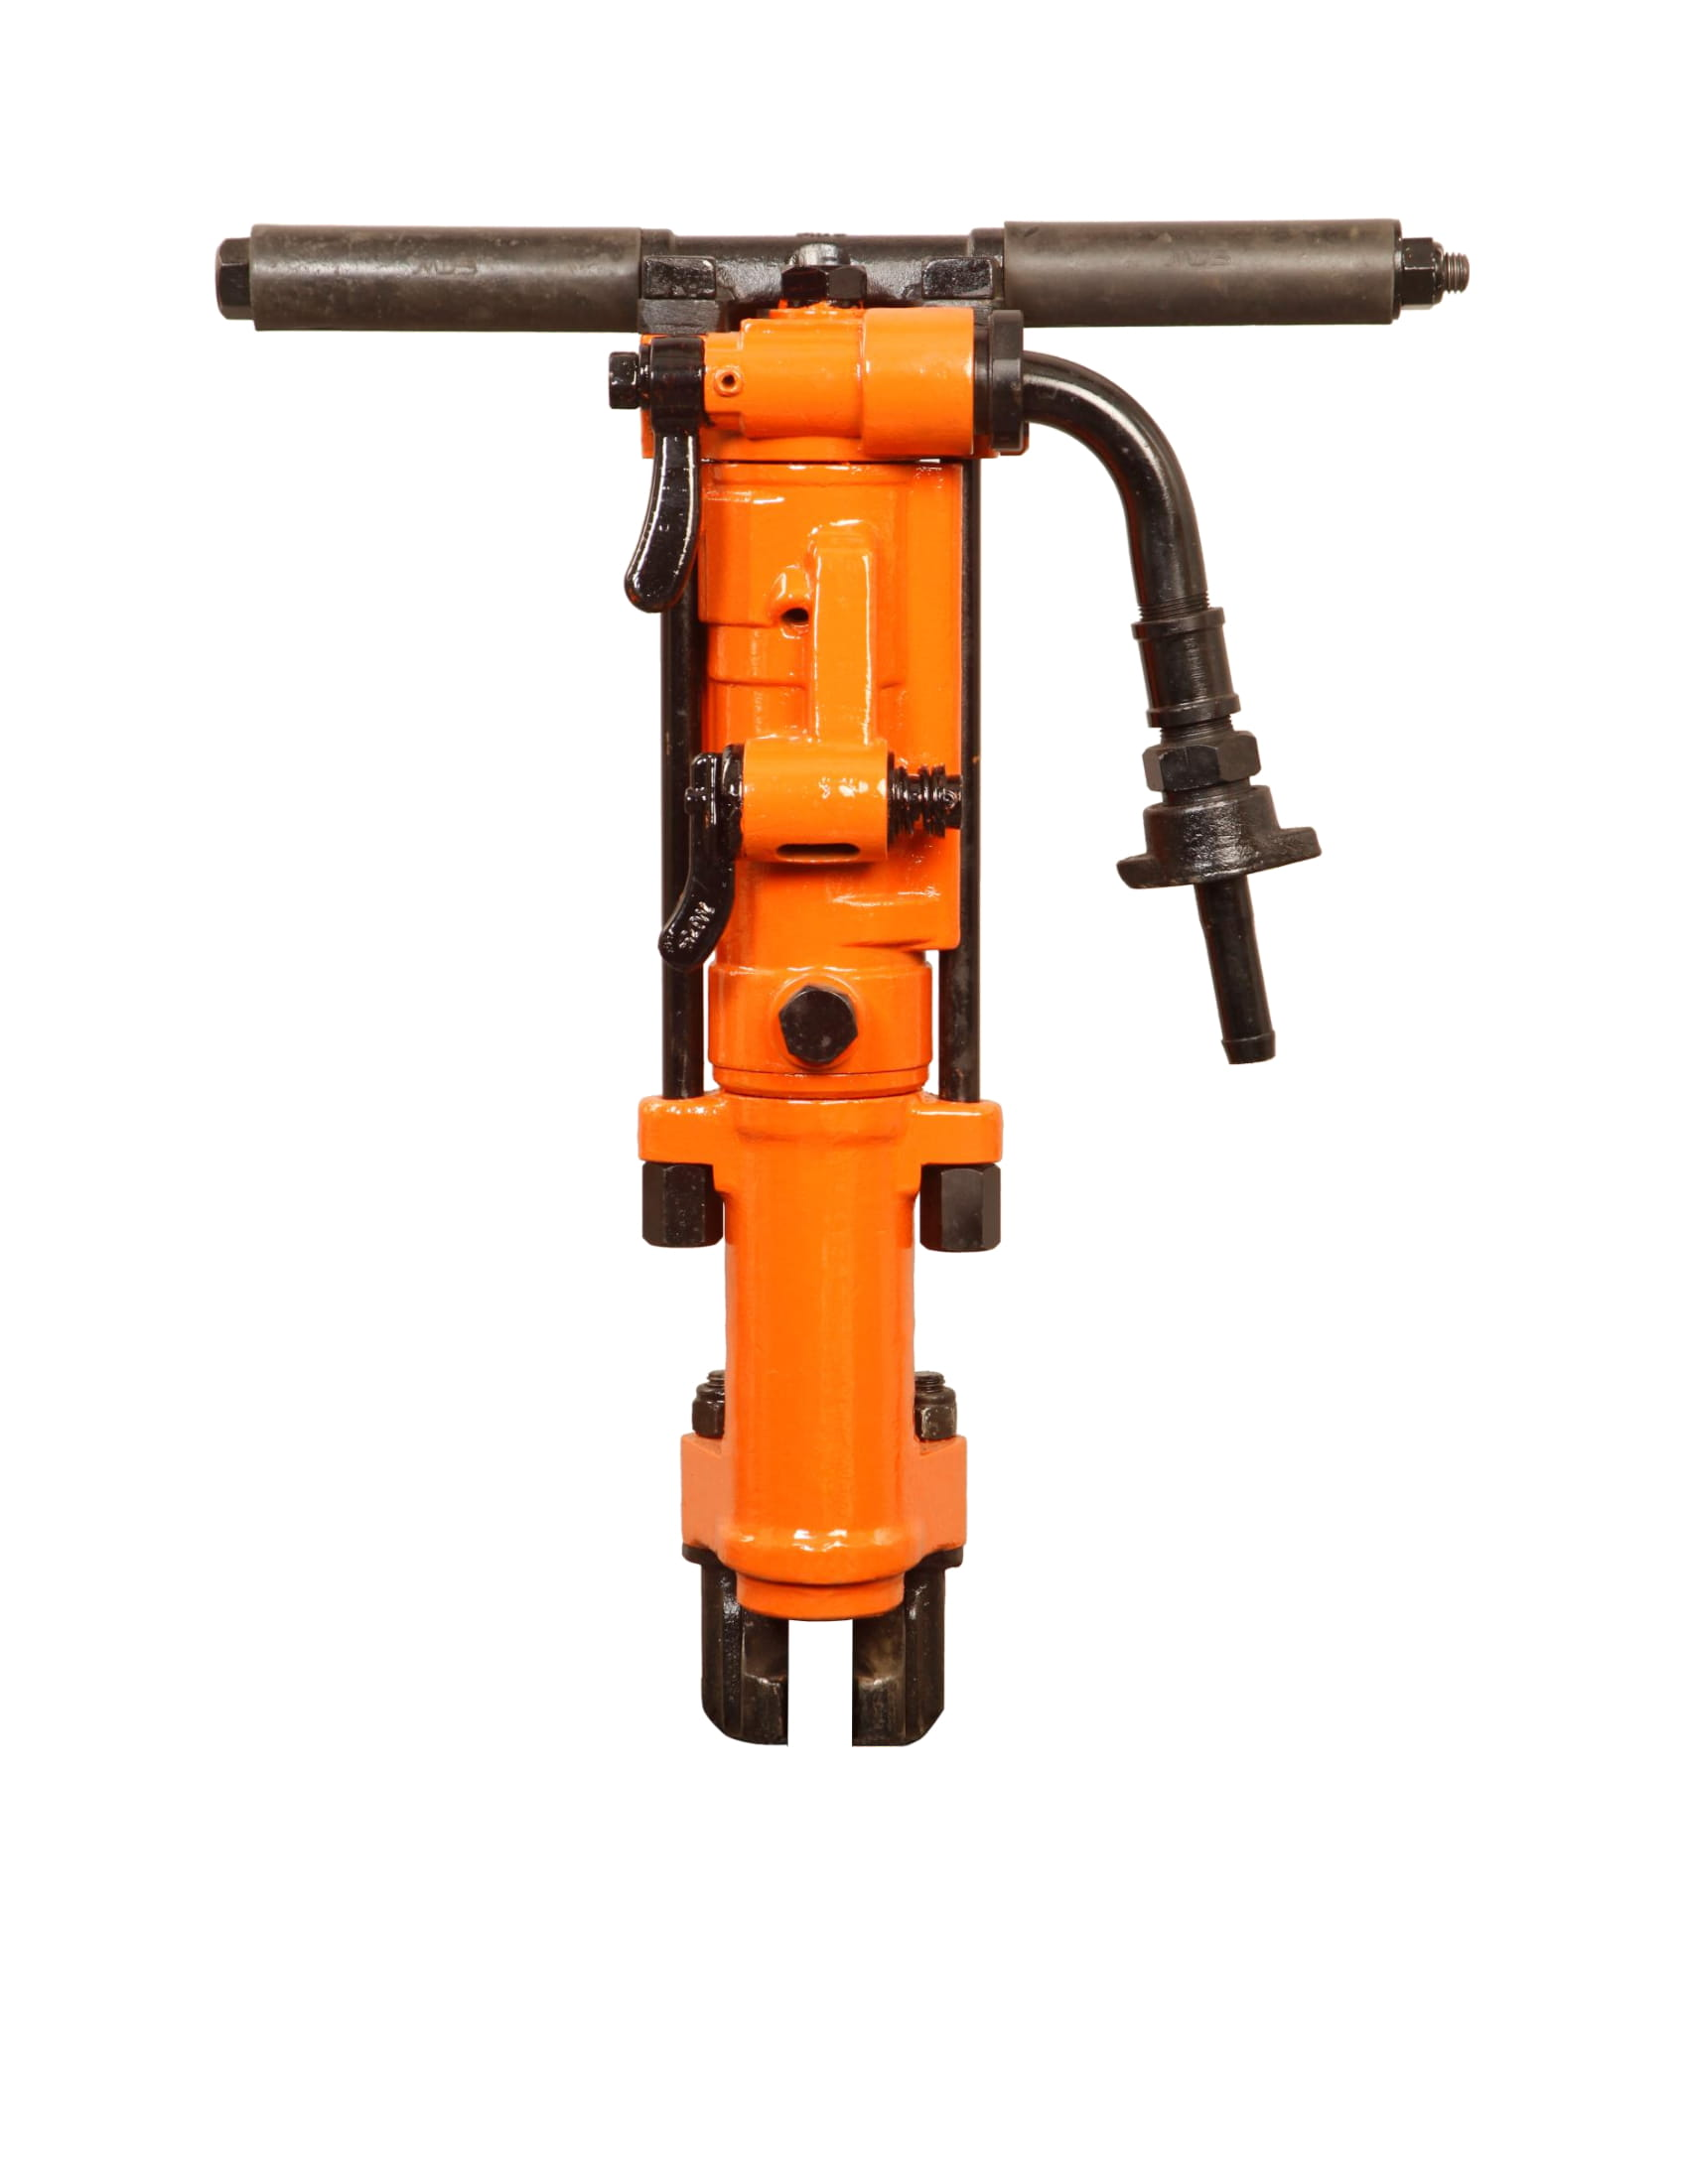 MINDRILL Jackhammer MH502A - 50 lb, 100 cfm- Parts interchangable with Chicago Pneumatic CP 0032A